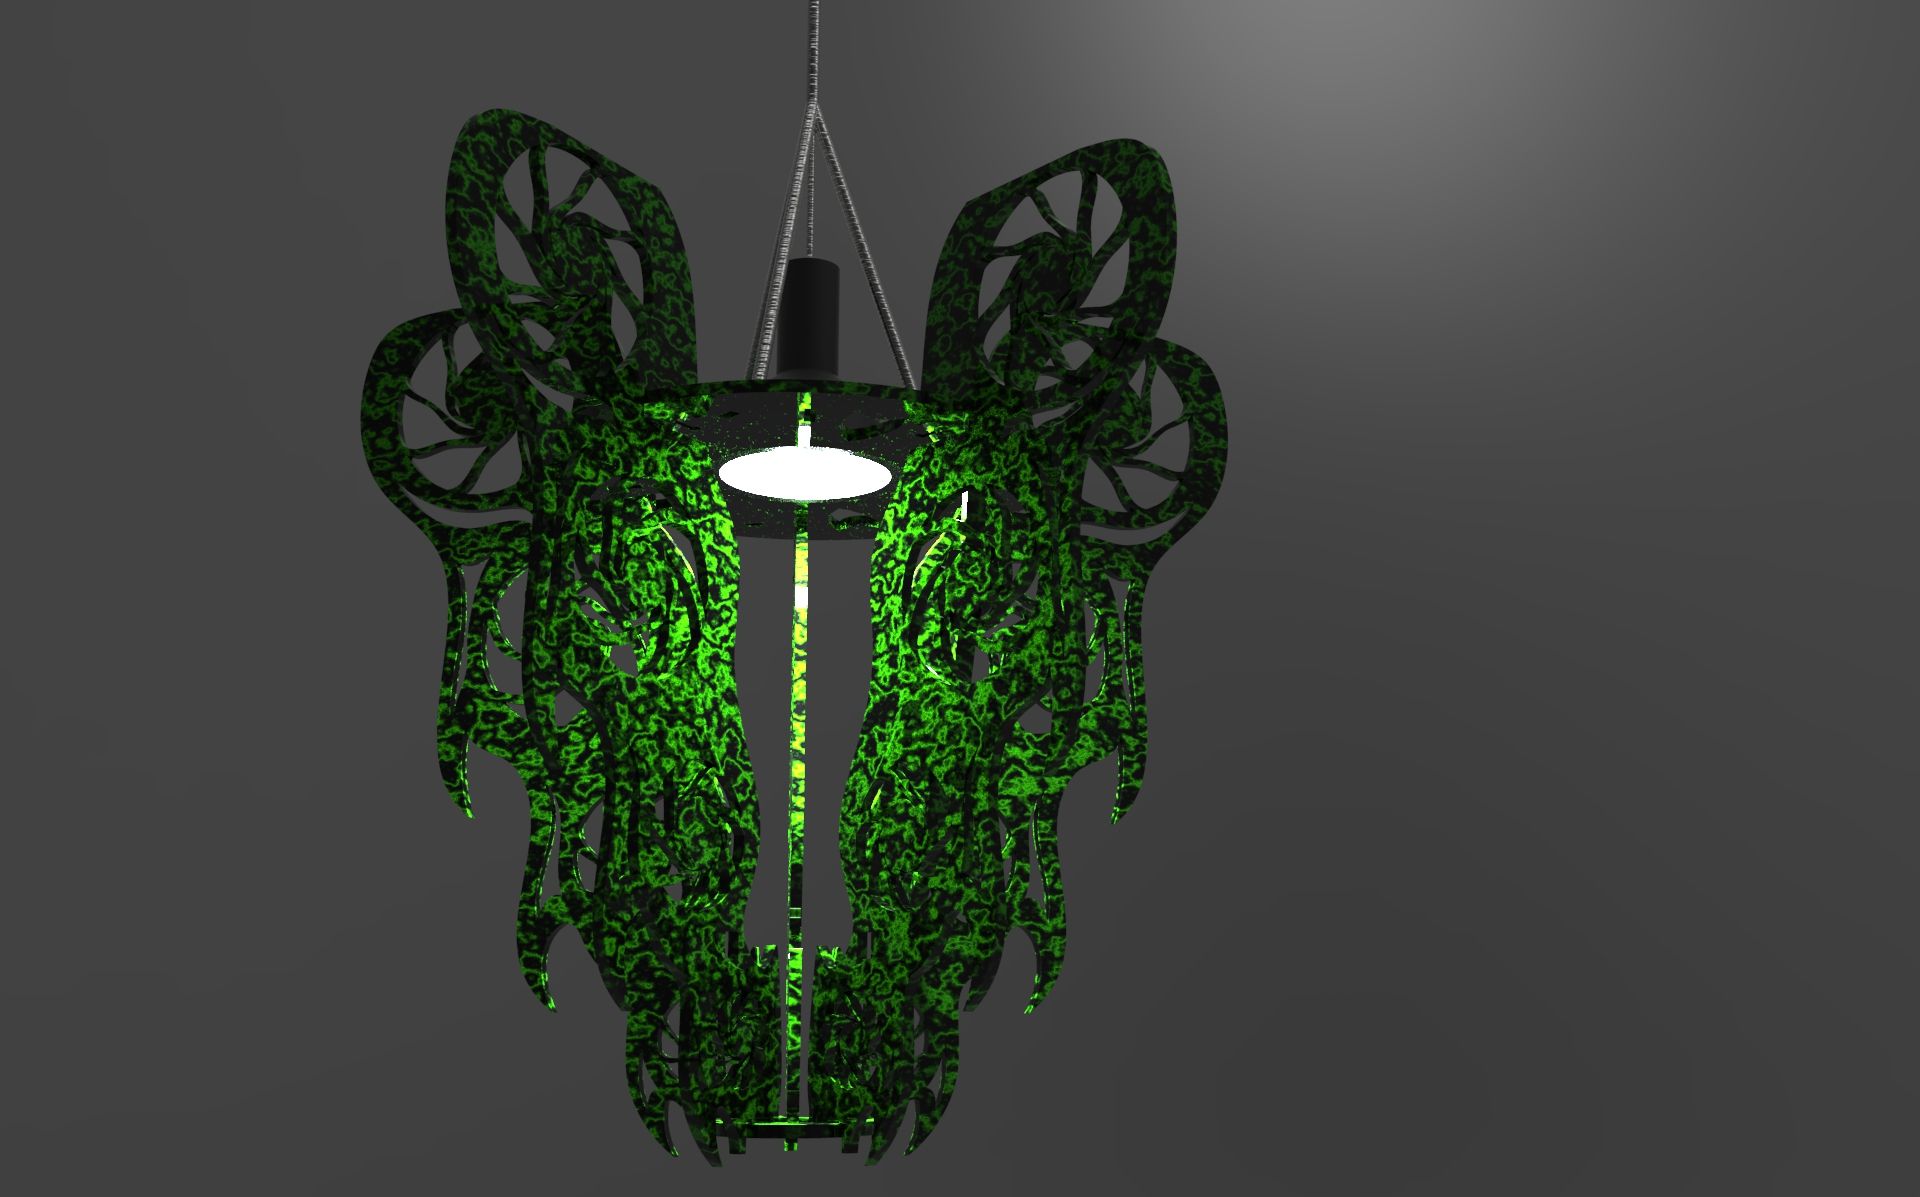 Final render black with green viens